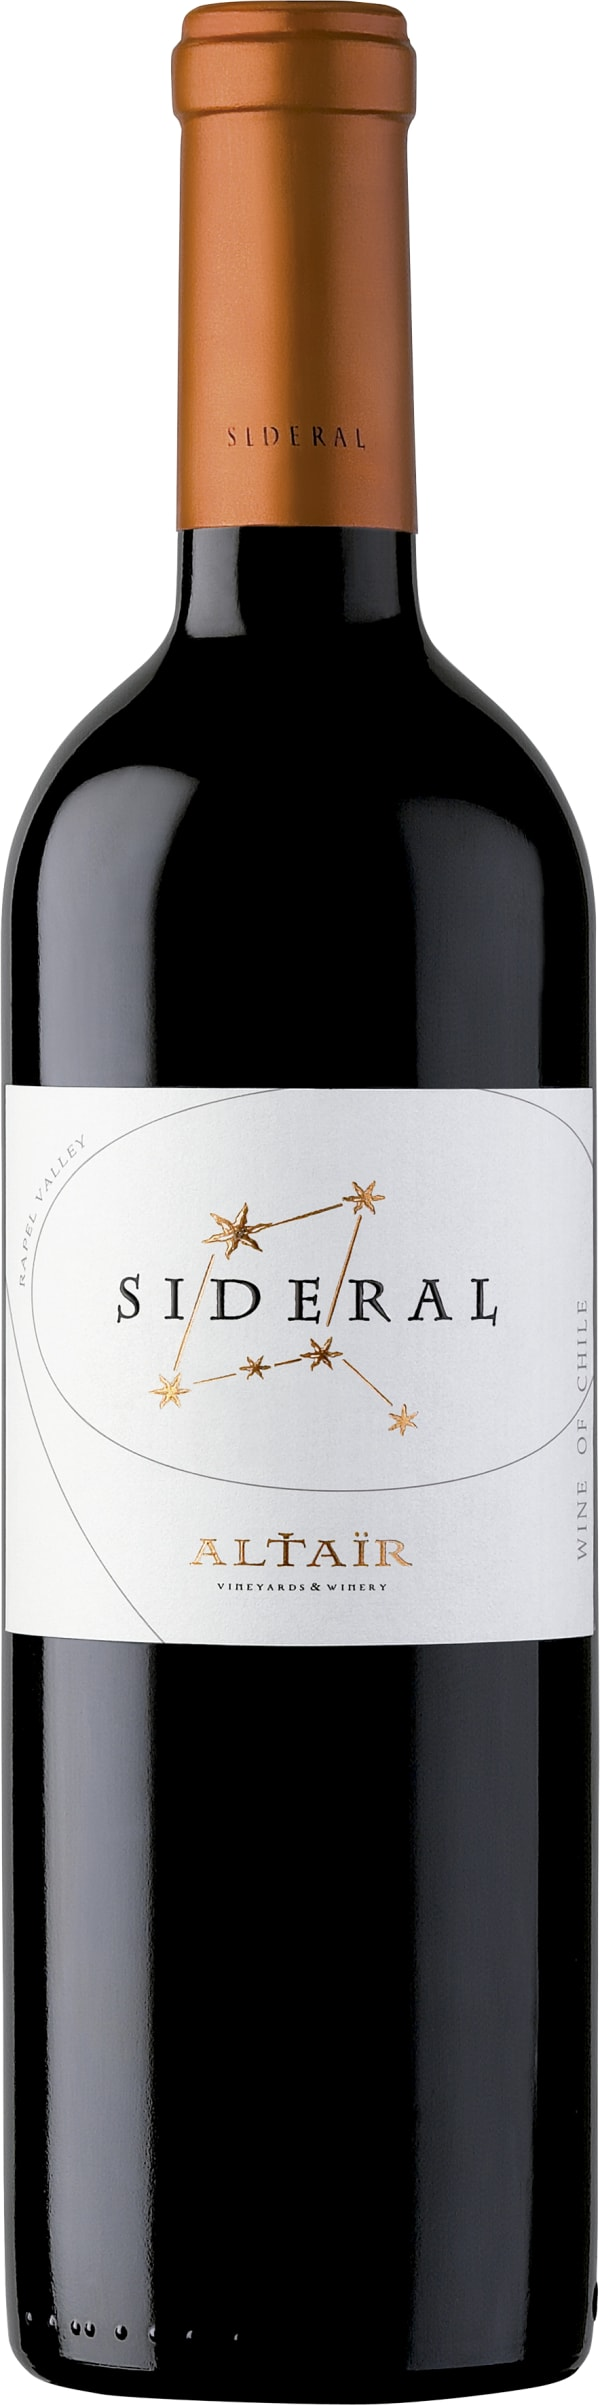 Sideral 2011